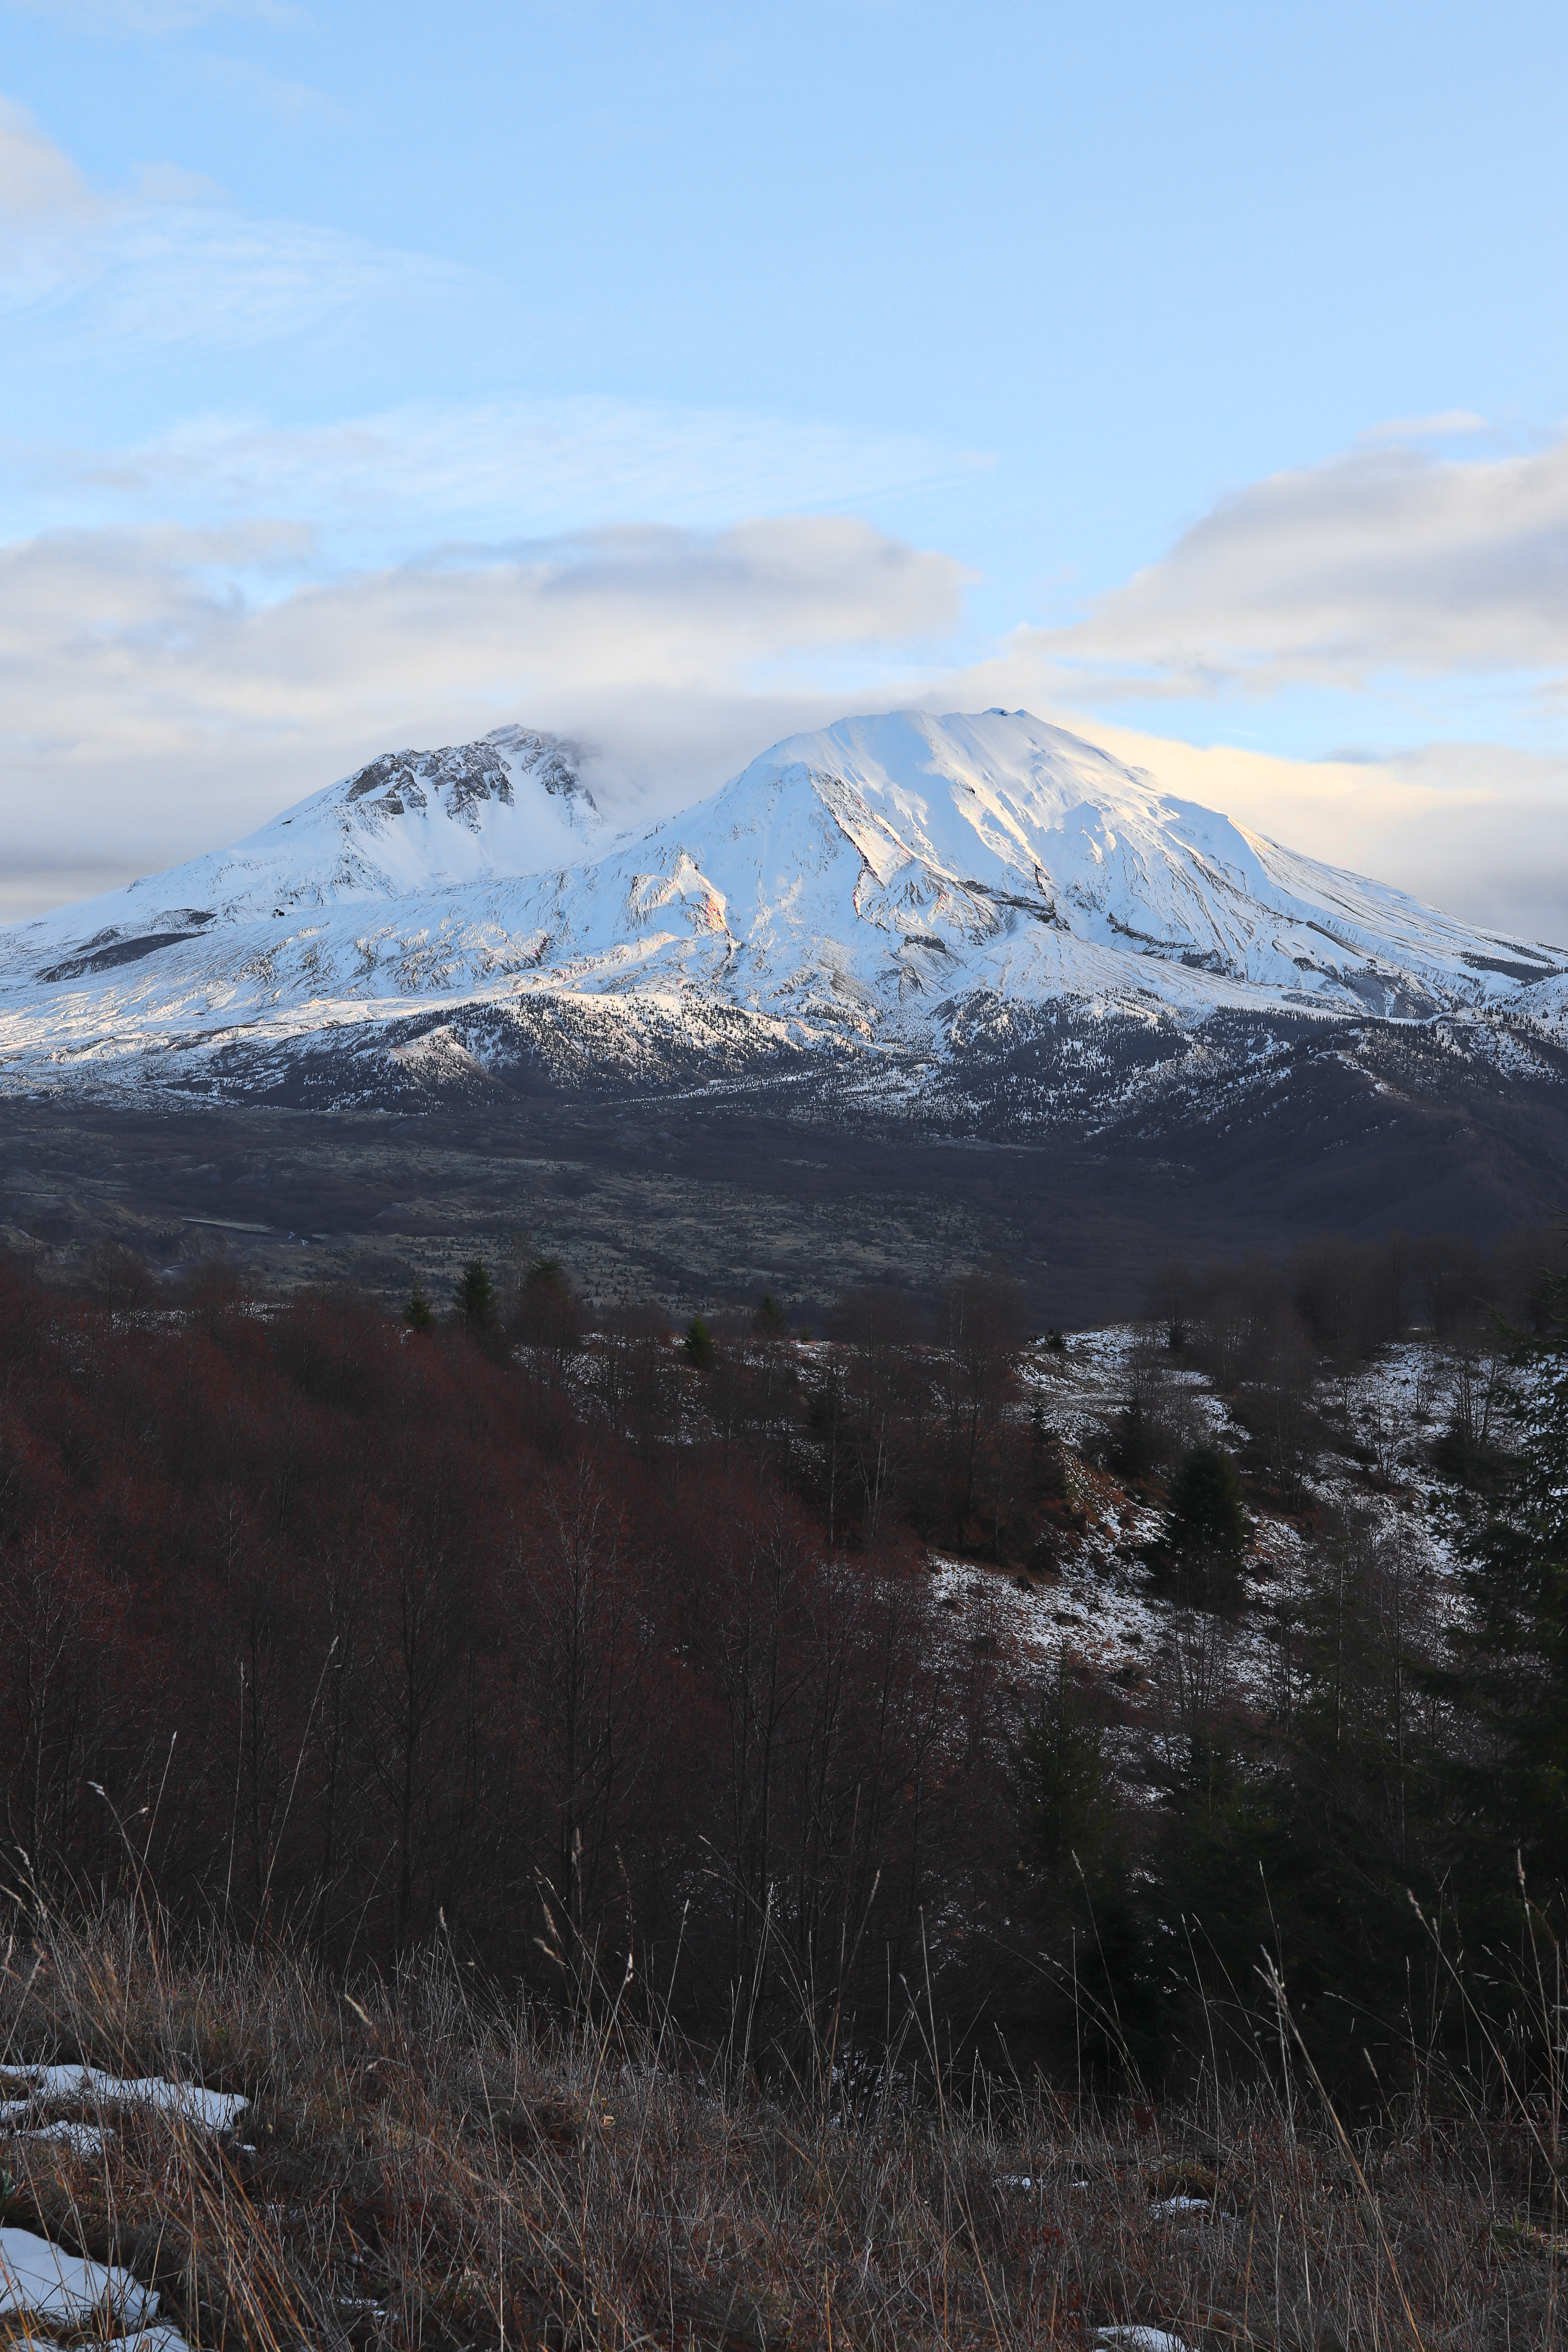 Mt. Staint Helens2